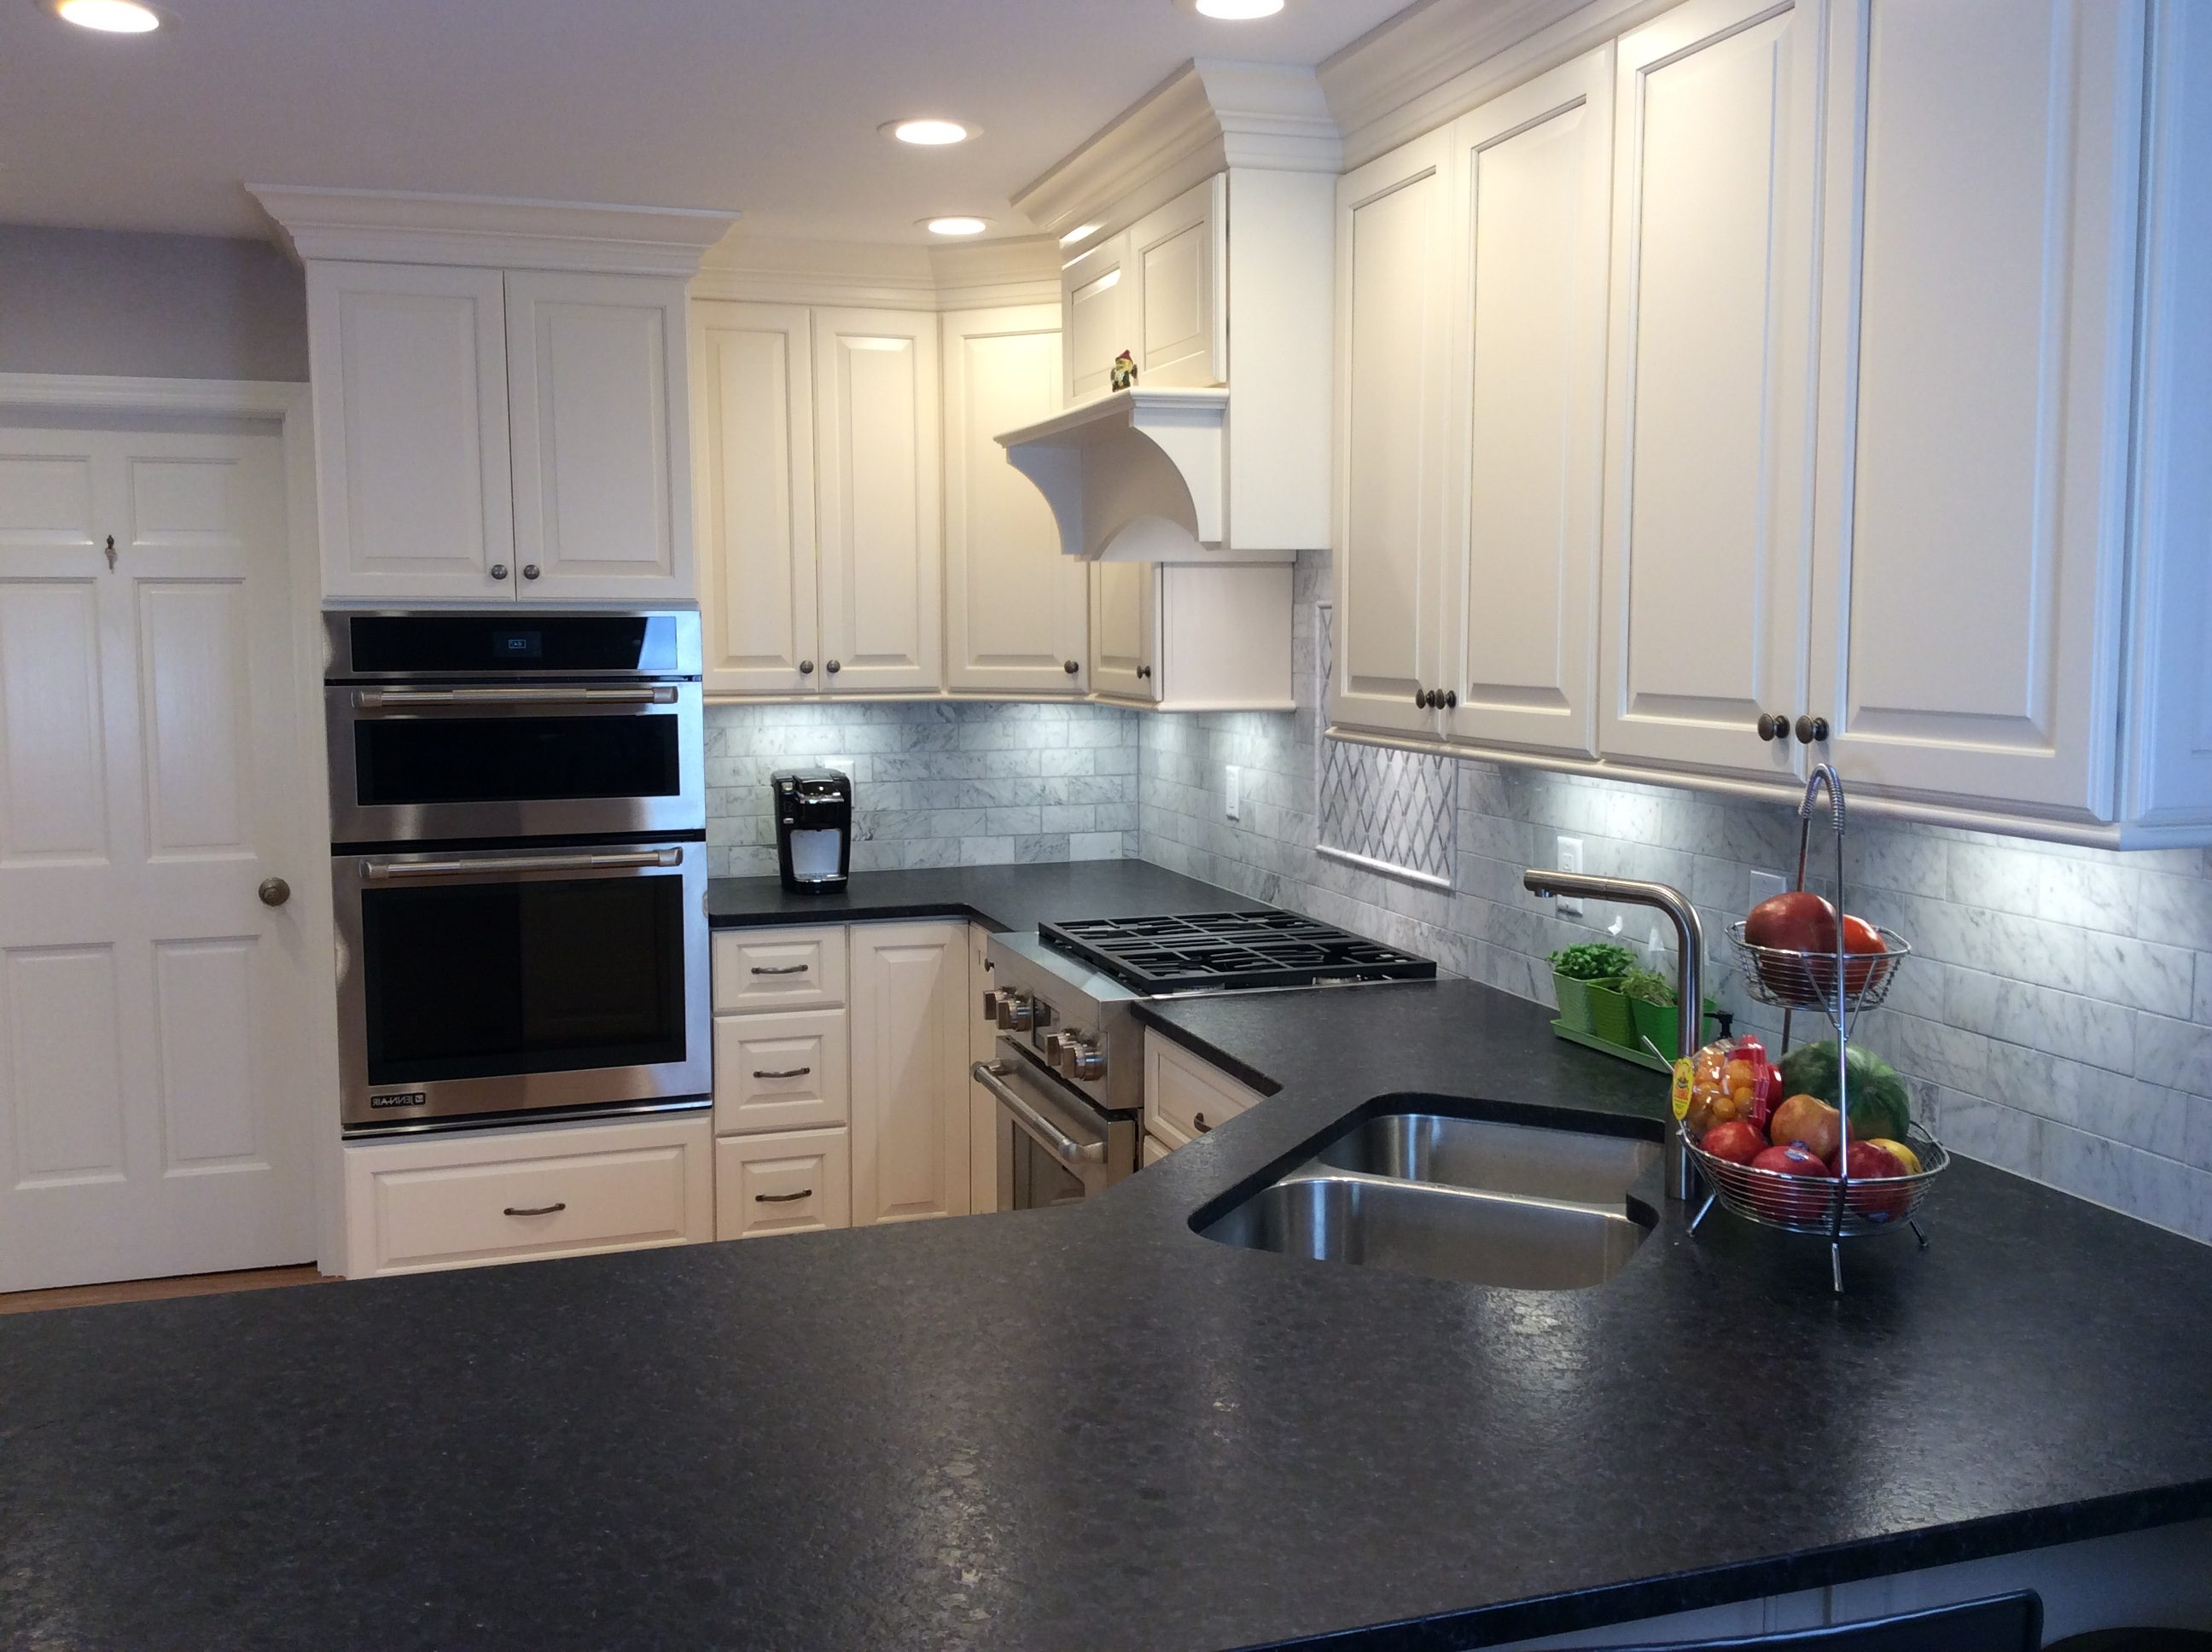 File:Modern Kitchen Design in the USA.jpg - Wikimedia Commons